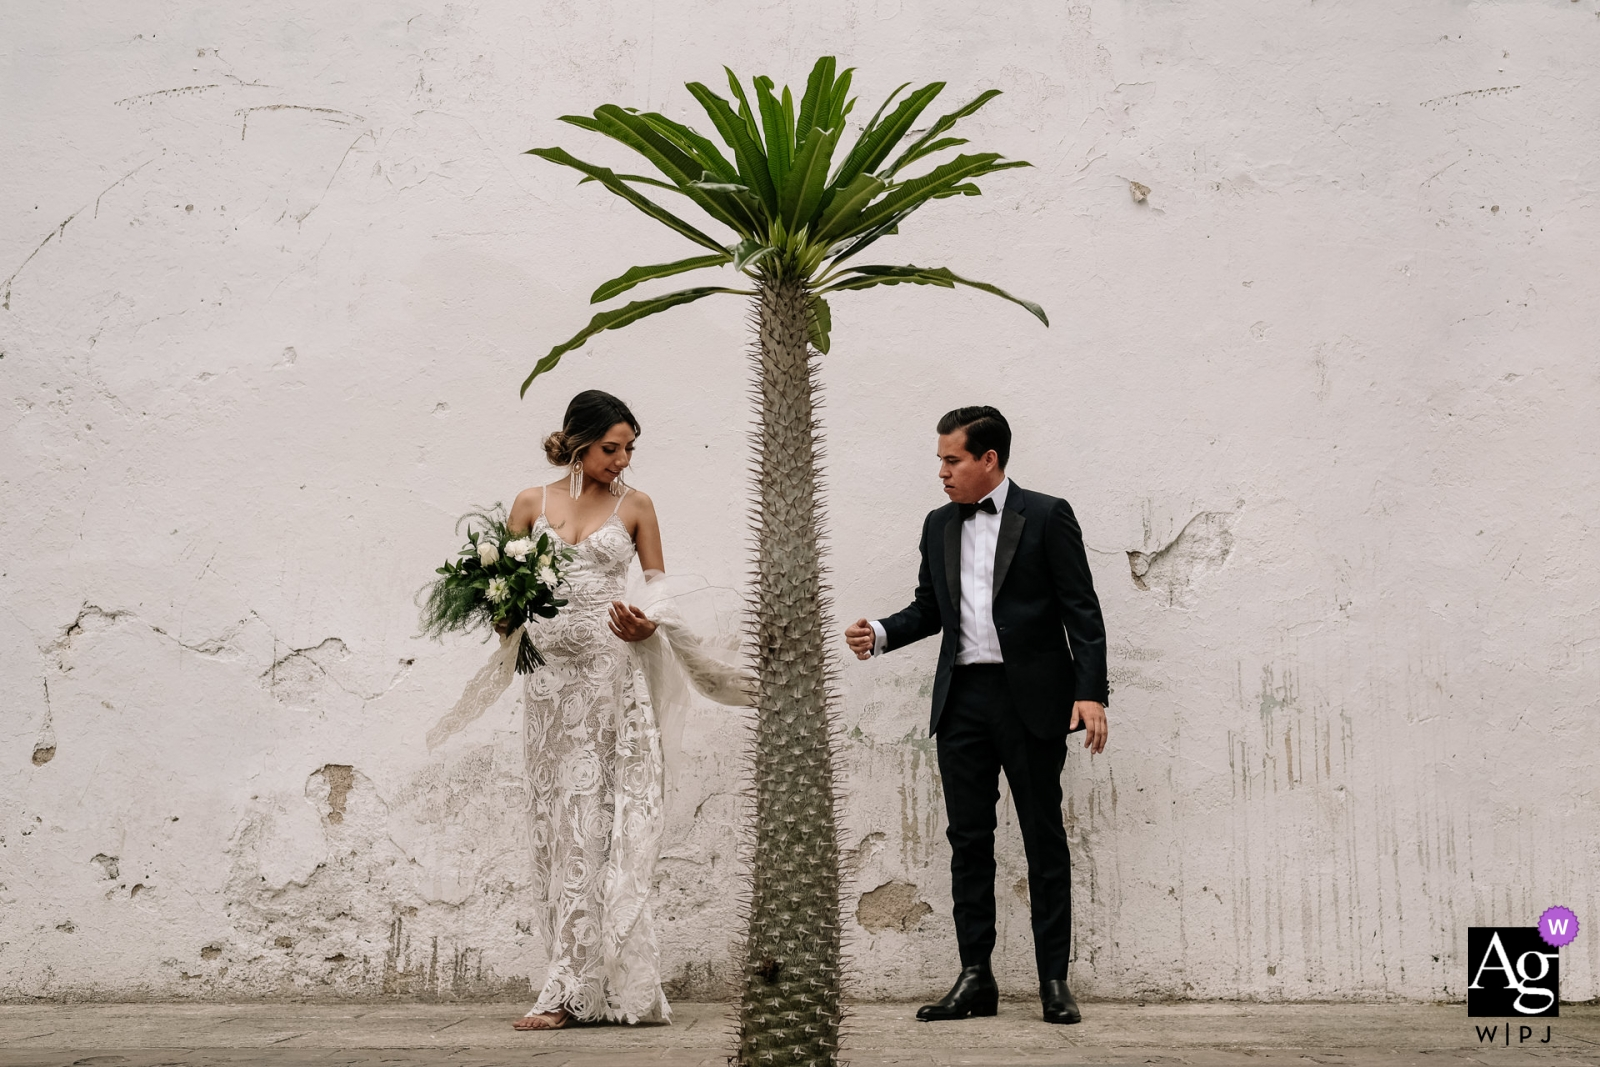 Hotel Azul, Oaxaca, Mexico Wedding Photo of Newlywed portrait on the streets with a single tree